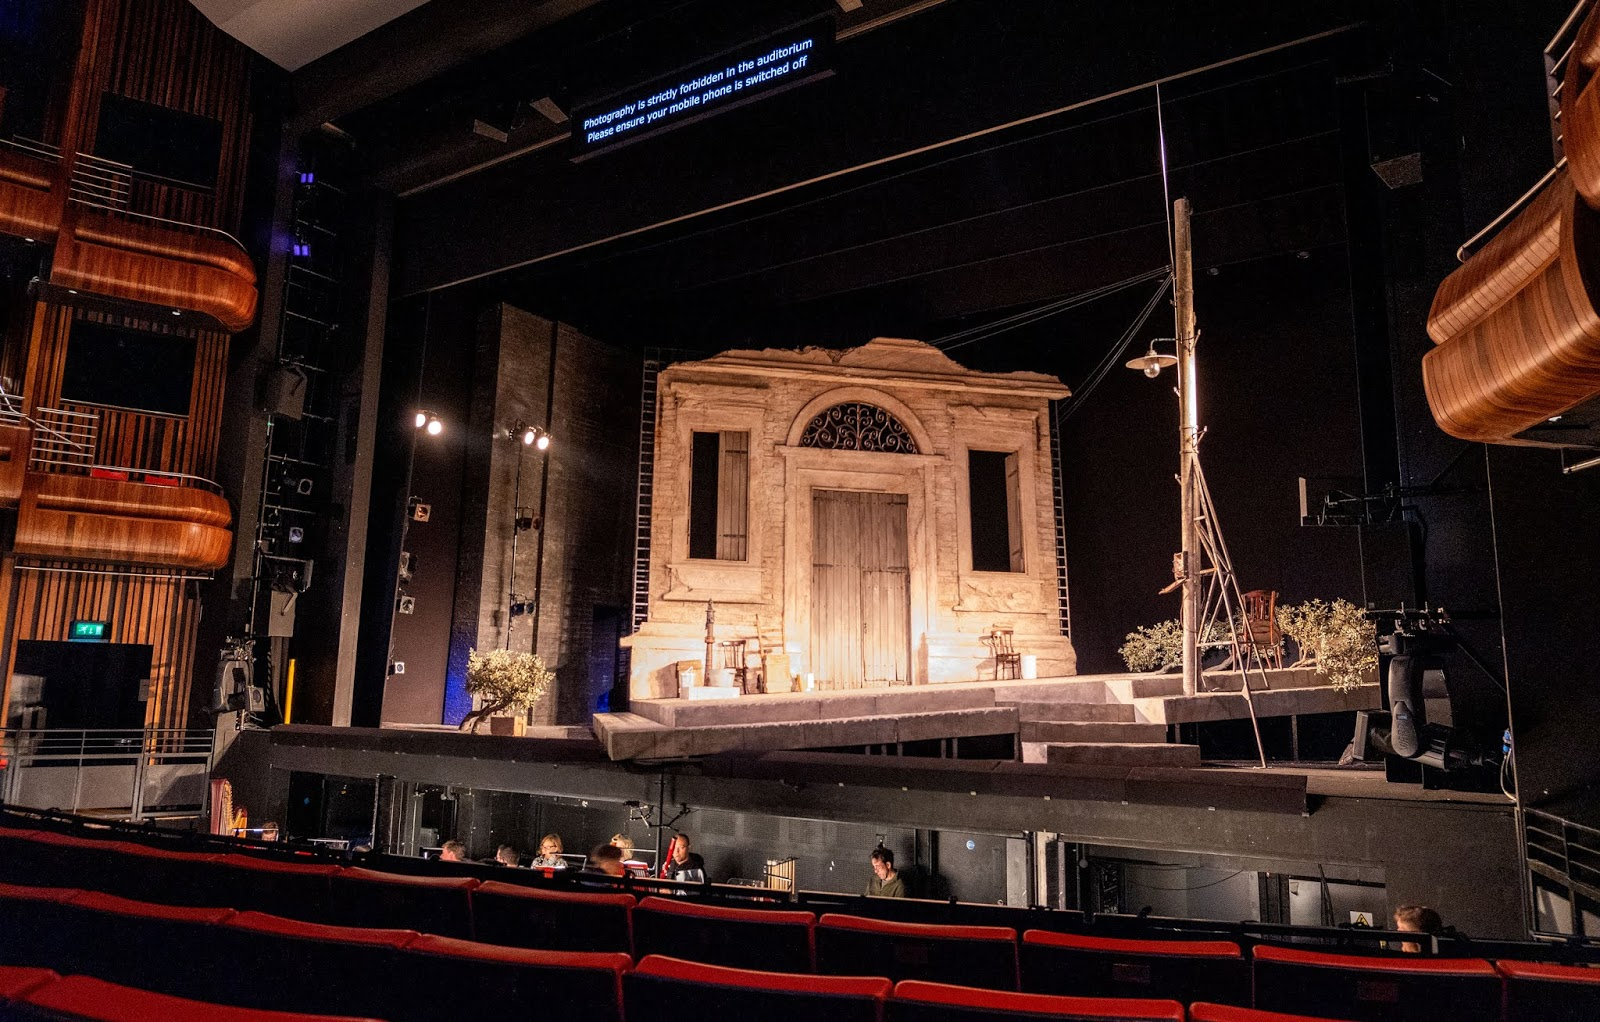 Glyndebourne's set for L'elisir d'amore at the Marlowe Theatre, Canterbury